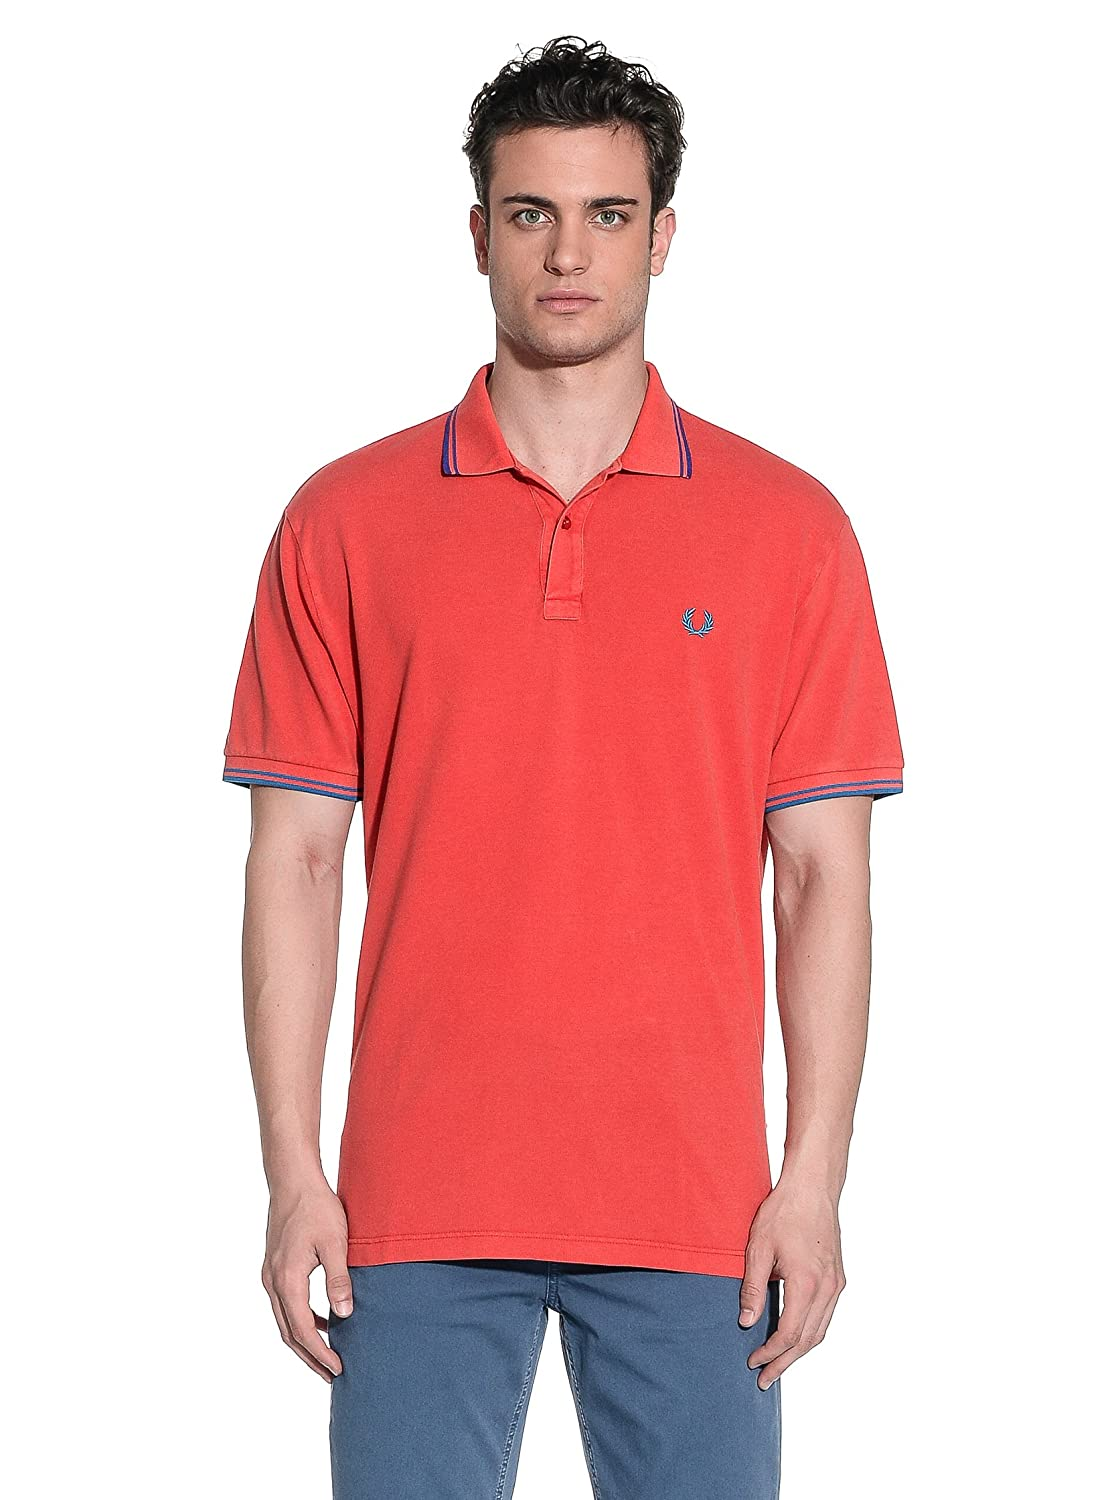 Fred Perry Polo Rojo S: Amazon.es: Ropa y accesorios